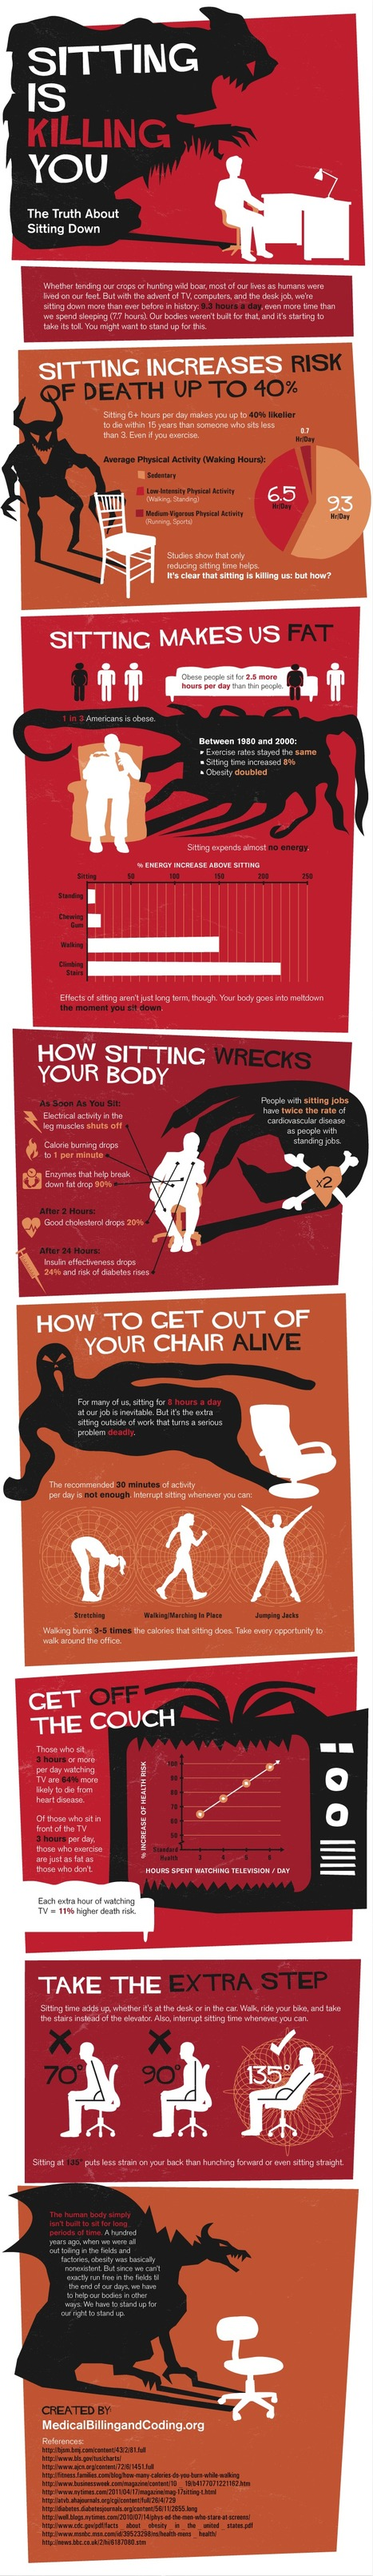 Health Review - How Sitting all day Decreases Human Life | Infographics | Curious thinking | Scoop.it